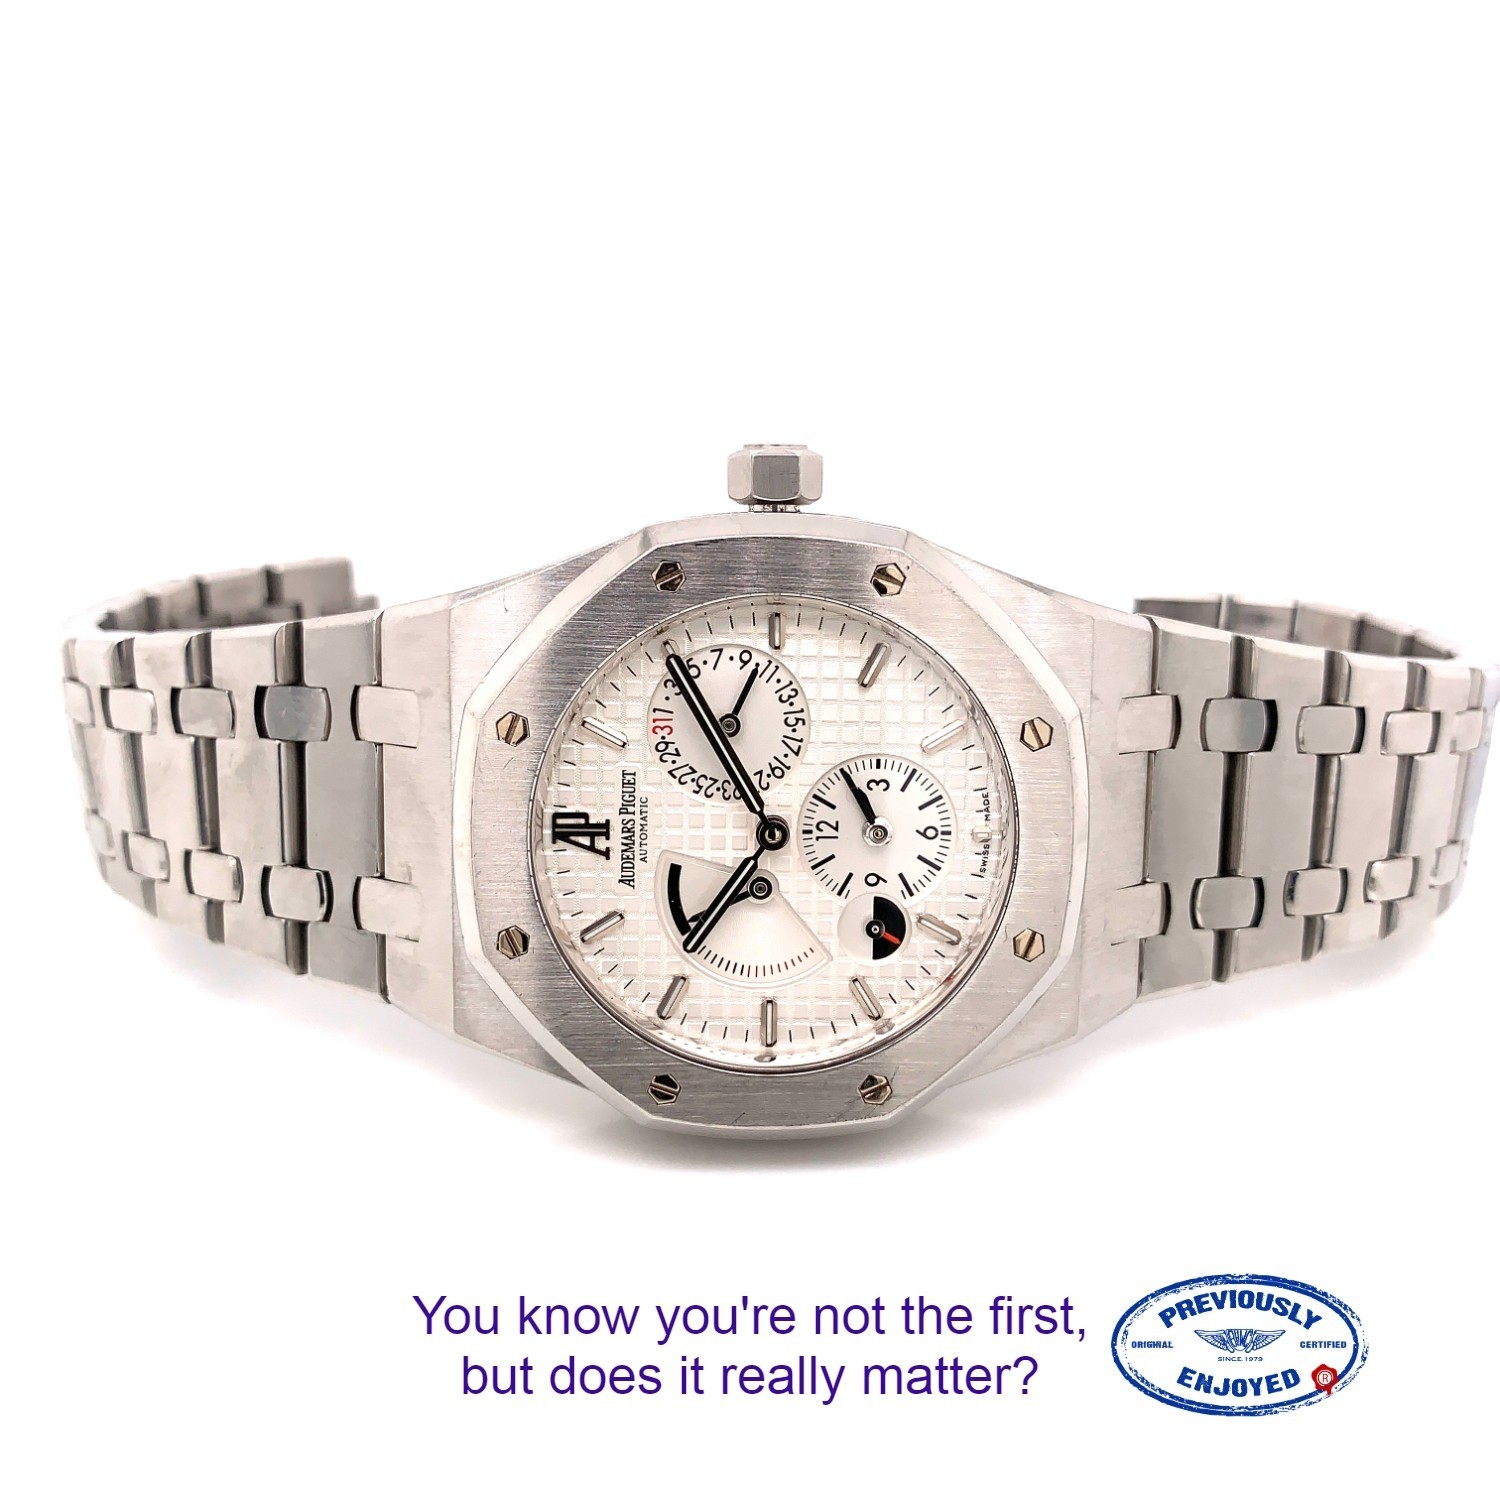 AUDEMARS PIGUET ROYAL OAK DUAL TIME POWER RESERVE 39MM STAINLESS STEEL SILVER DIAL 26120ST.OO.1220ST.01 0LLQCK